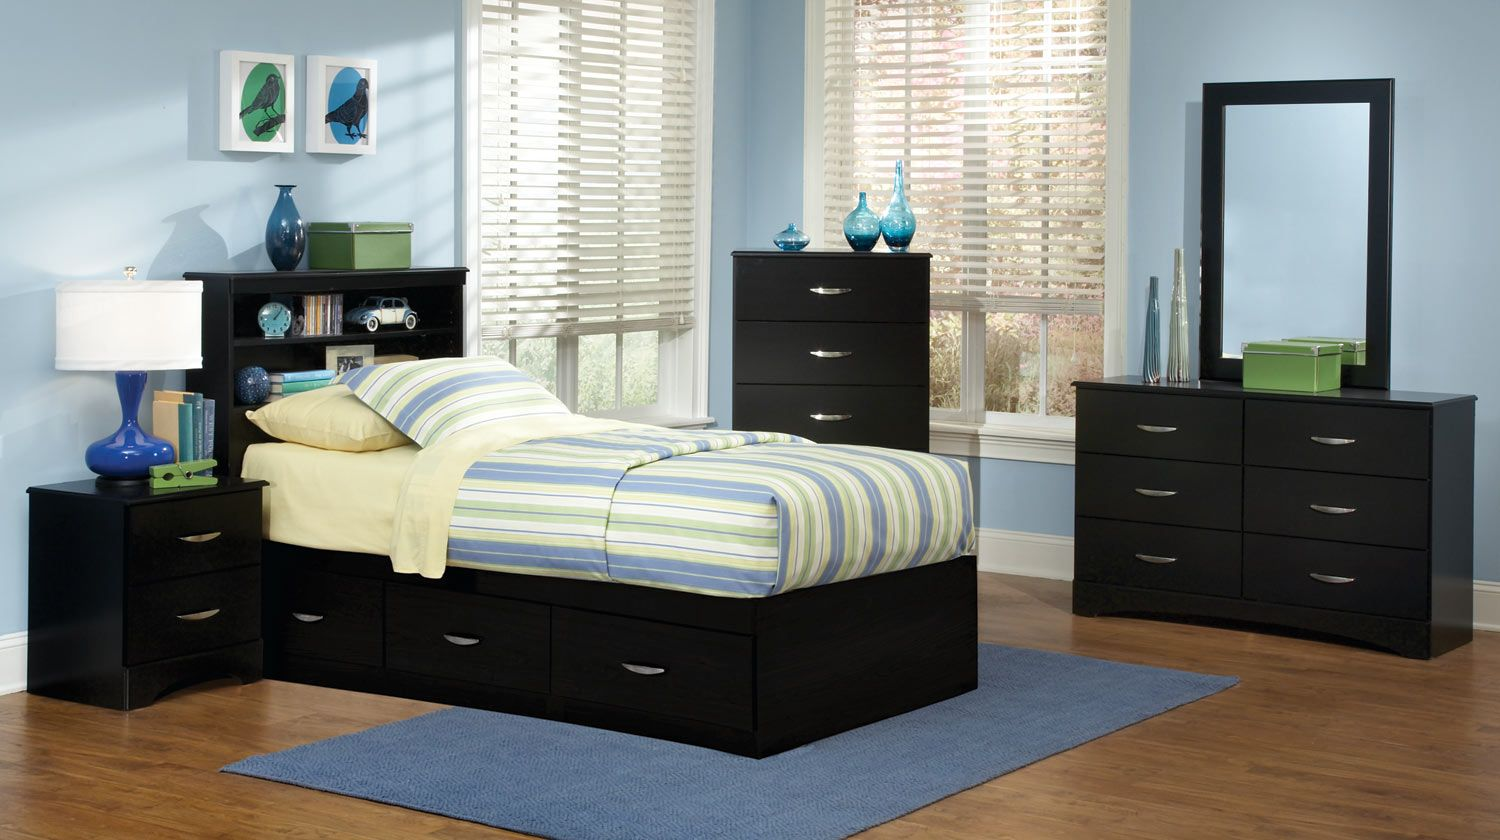 Kith Furniture Jacob 3 Drawer Mates Bedroom Set - Contemporary styling Stipple black Finish Brushed chrome hardware Picture frame molding accents on the Headboard and mirror